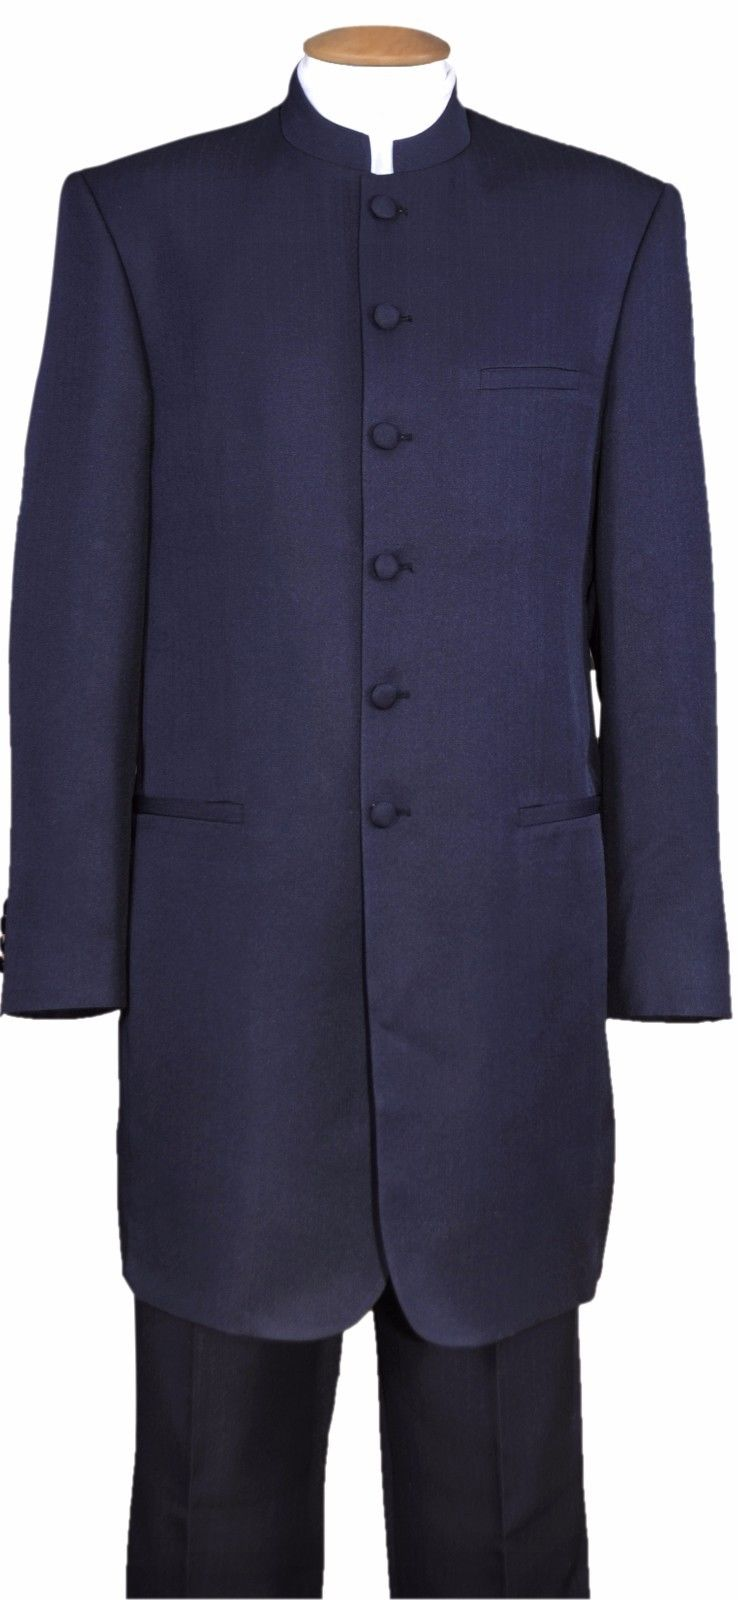 Fortino Landi Suit 6905H-Navy - Church Suits For Less